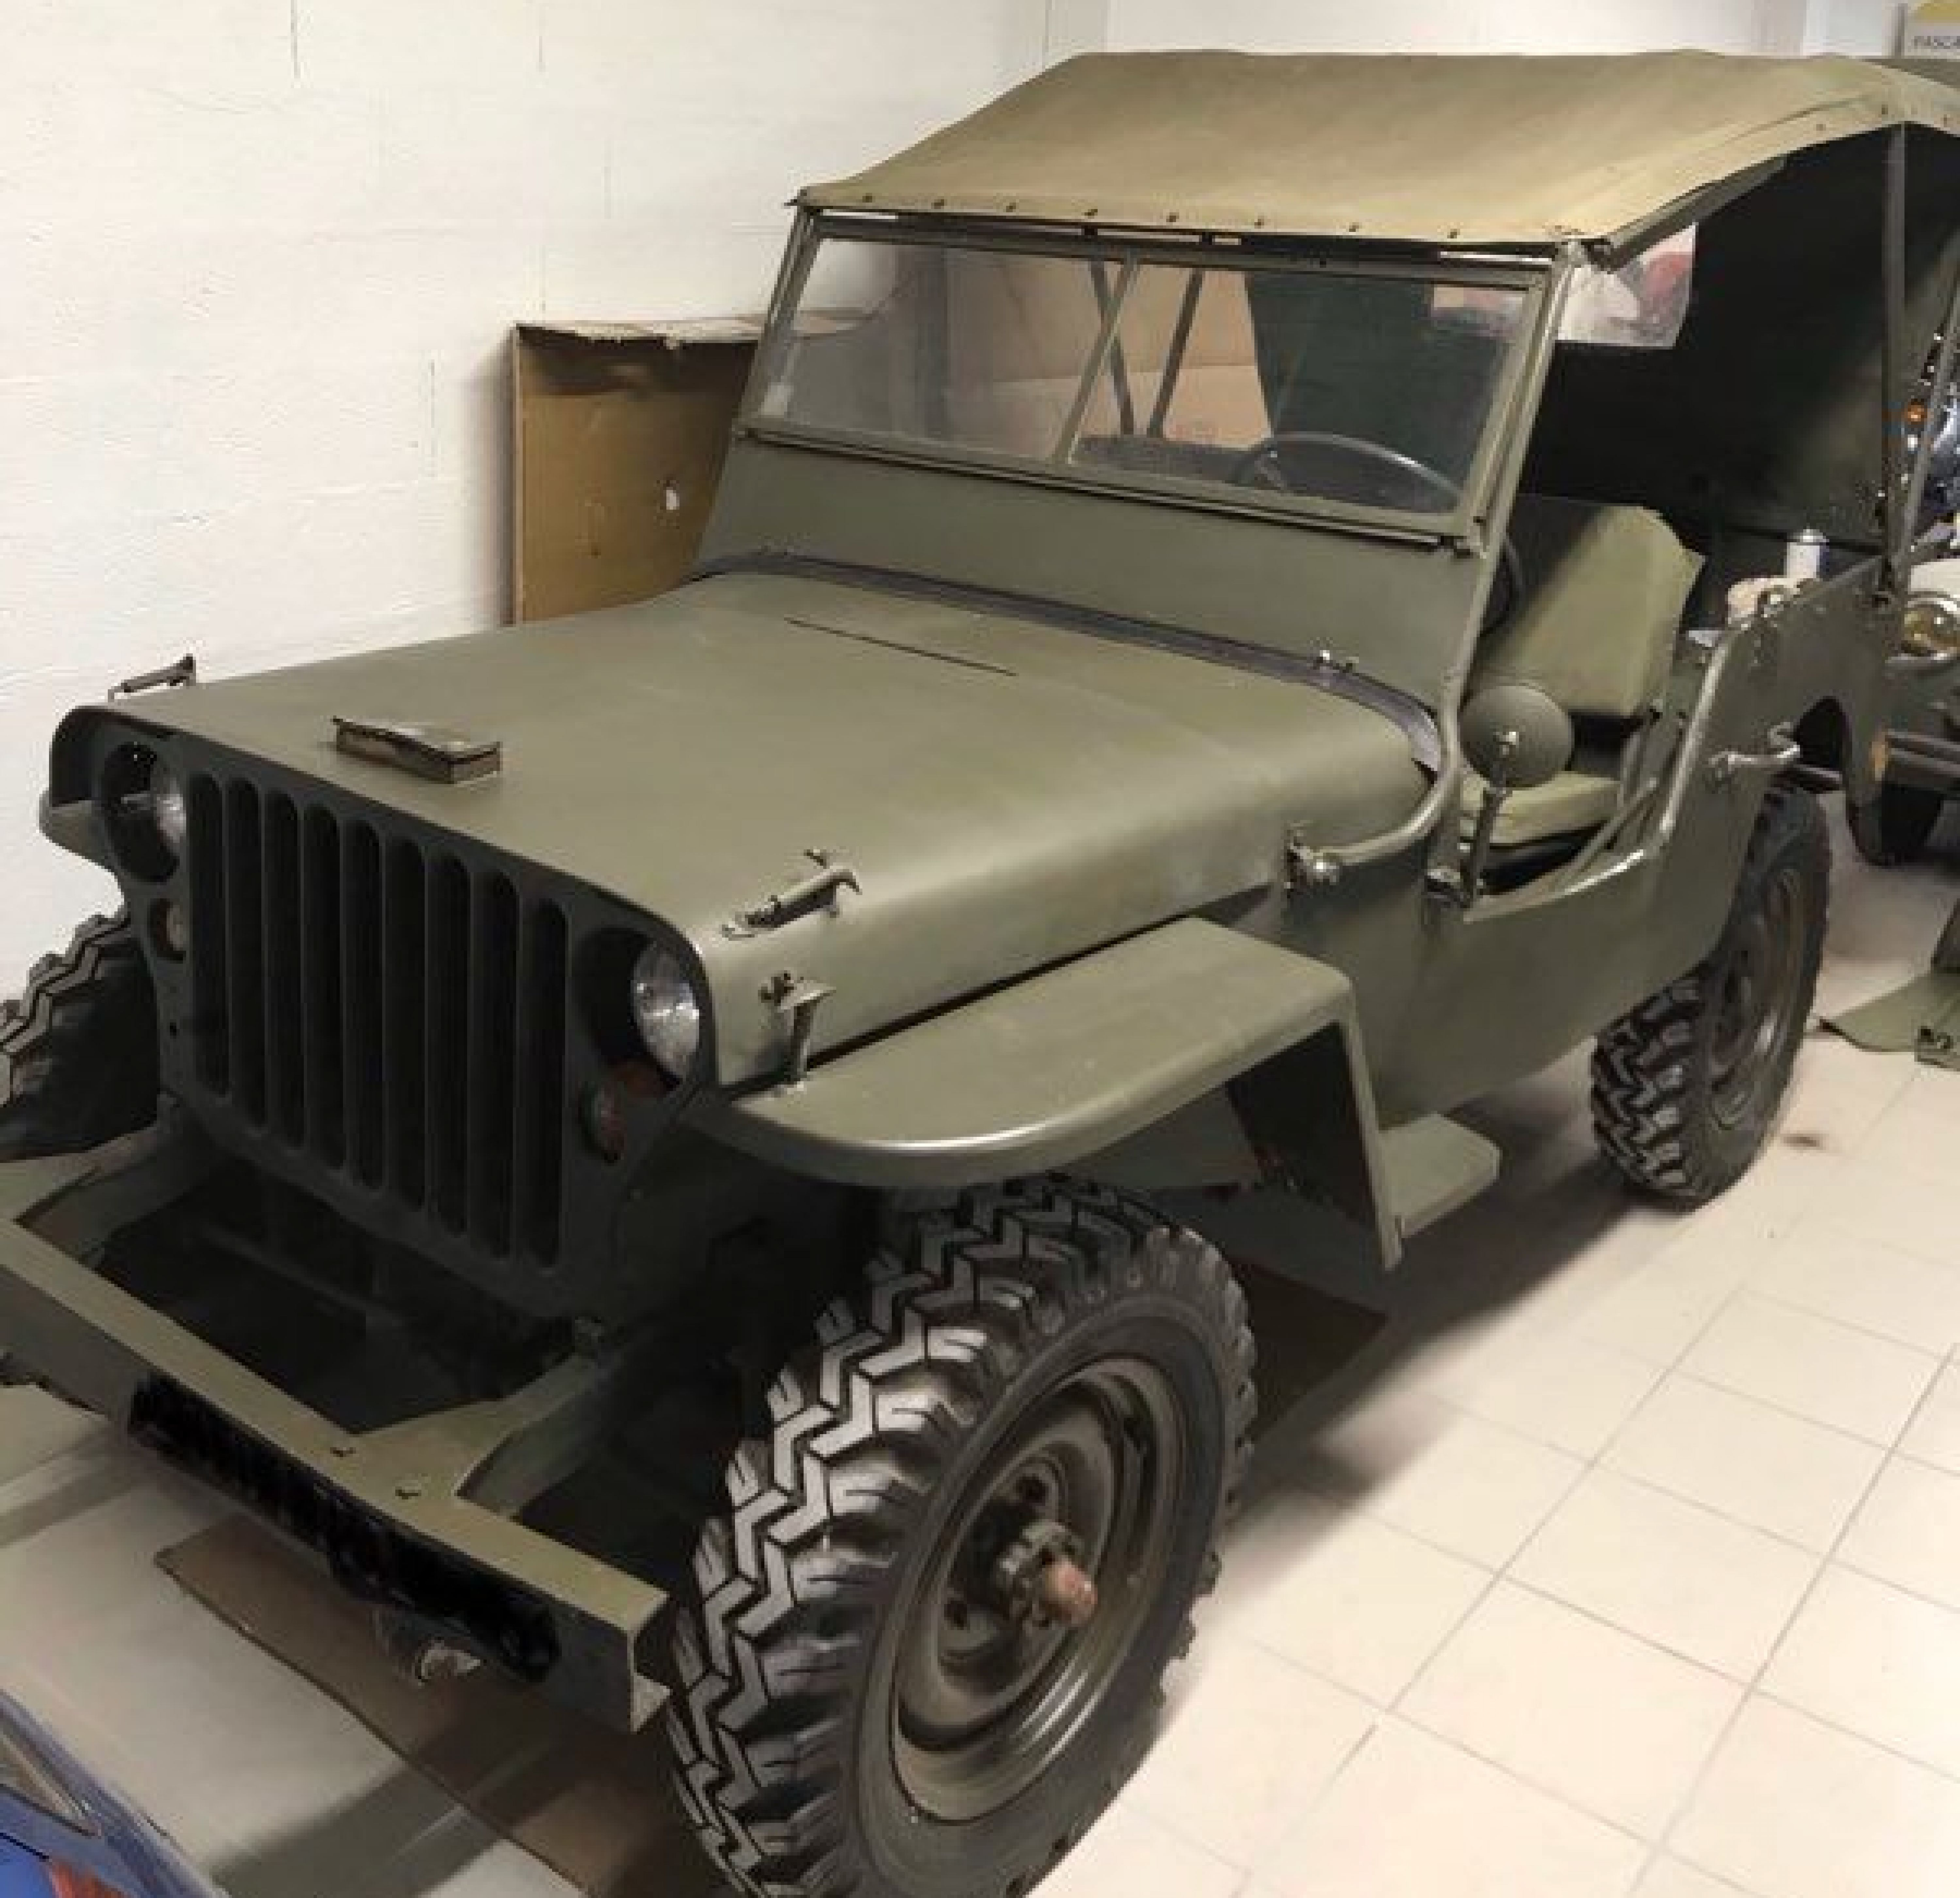 Jeep willys mb - Photo 1